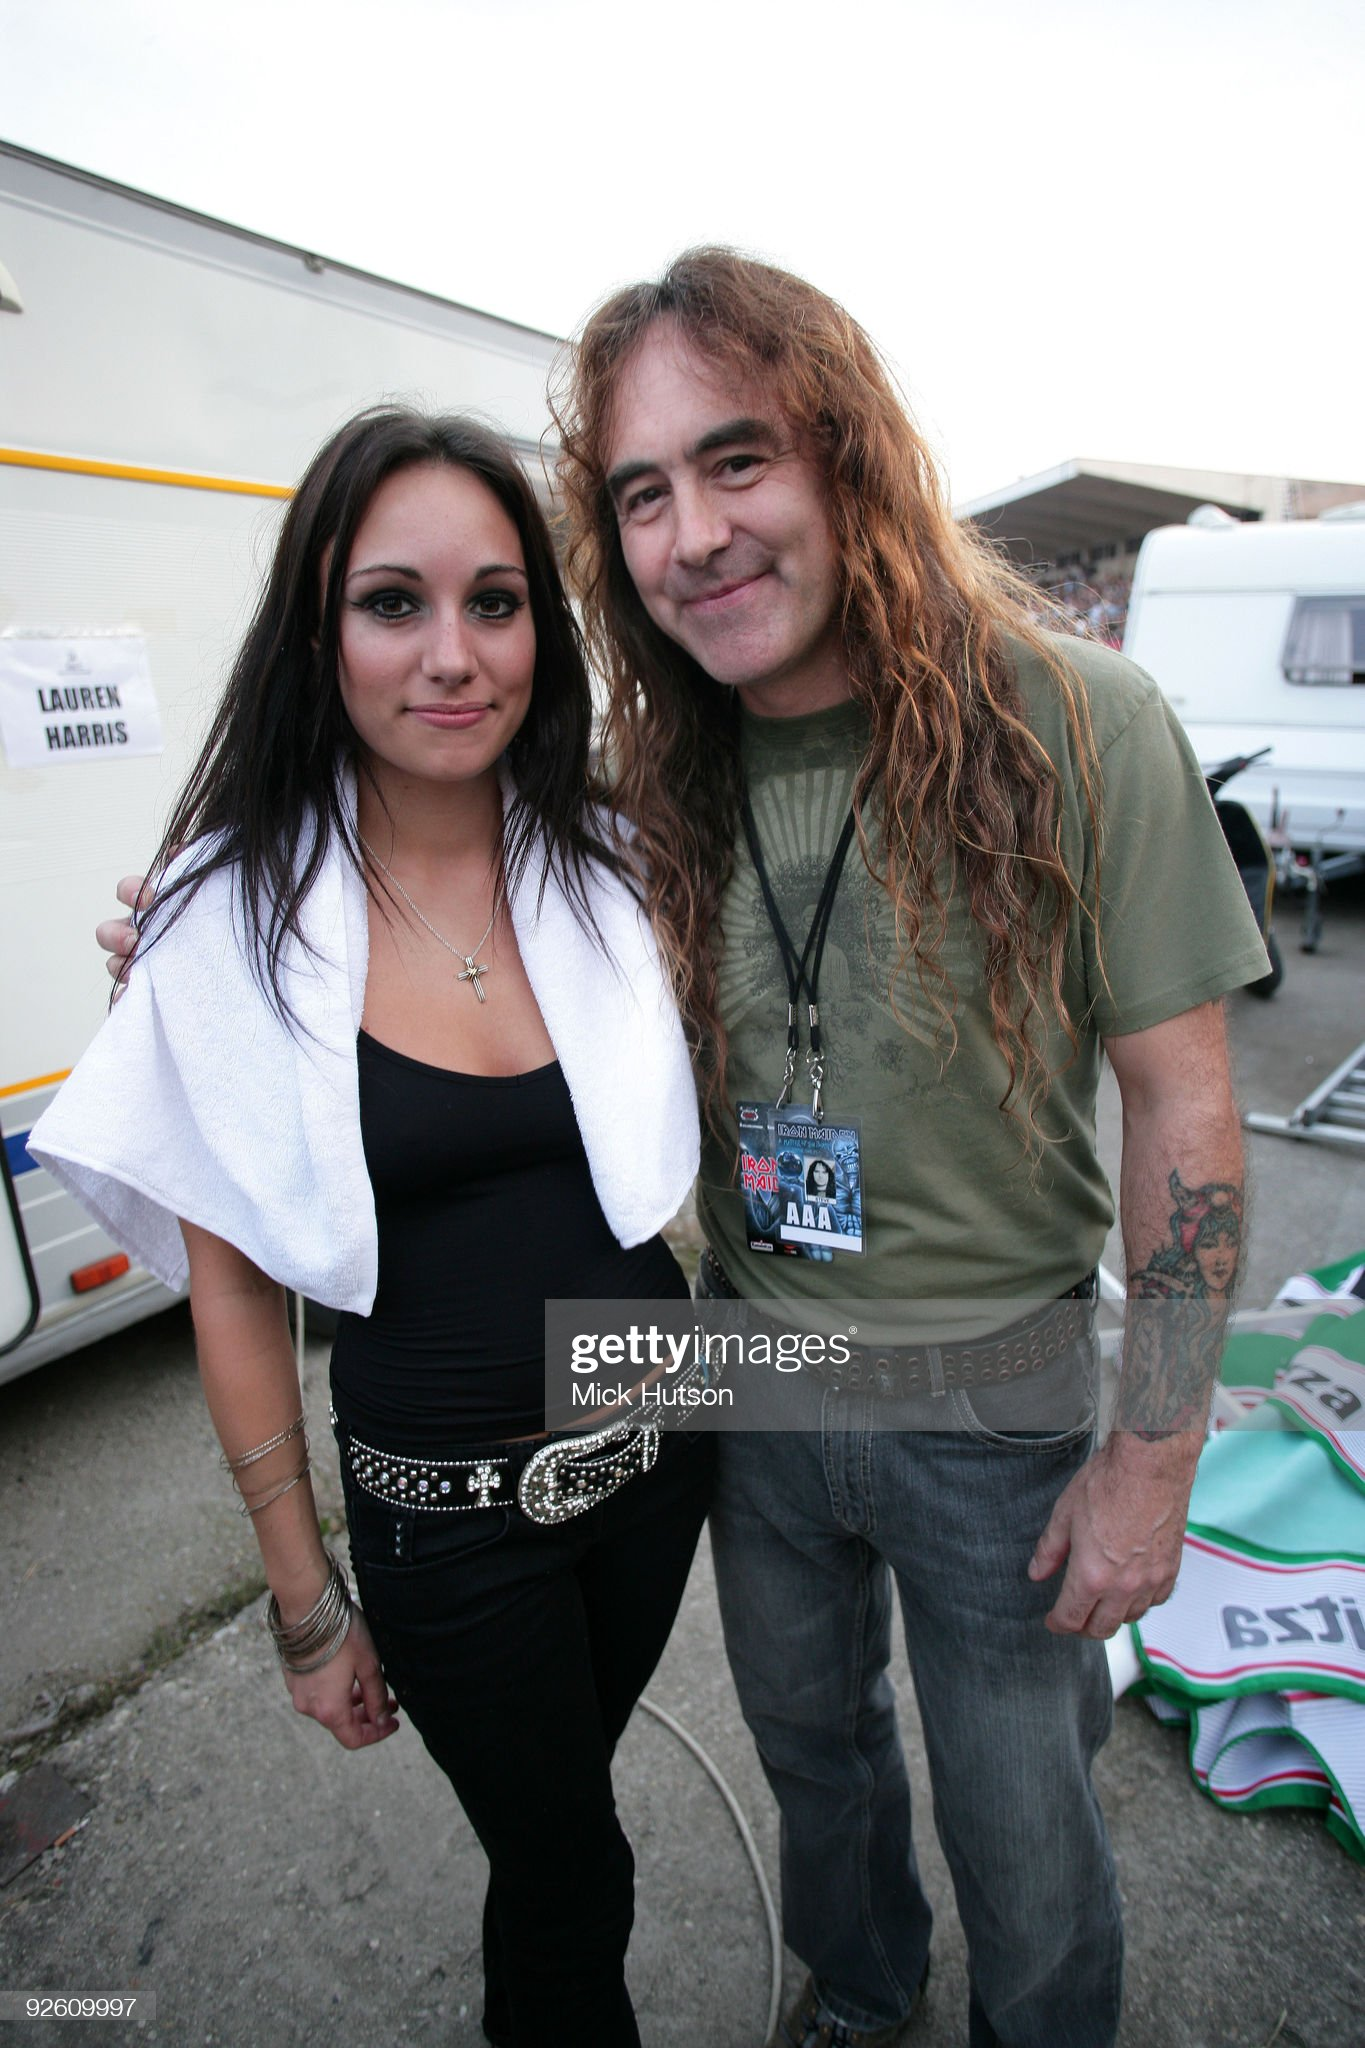 ¿Cuánto mide Lauren Harris? - Altura - Real height Lauren-harris-and-father-steve-harris-of-iron-maiden-pose-backstage-picture-id92609997?s=2048x2048